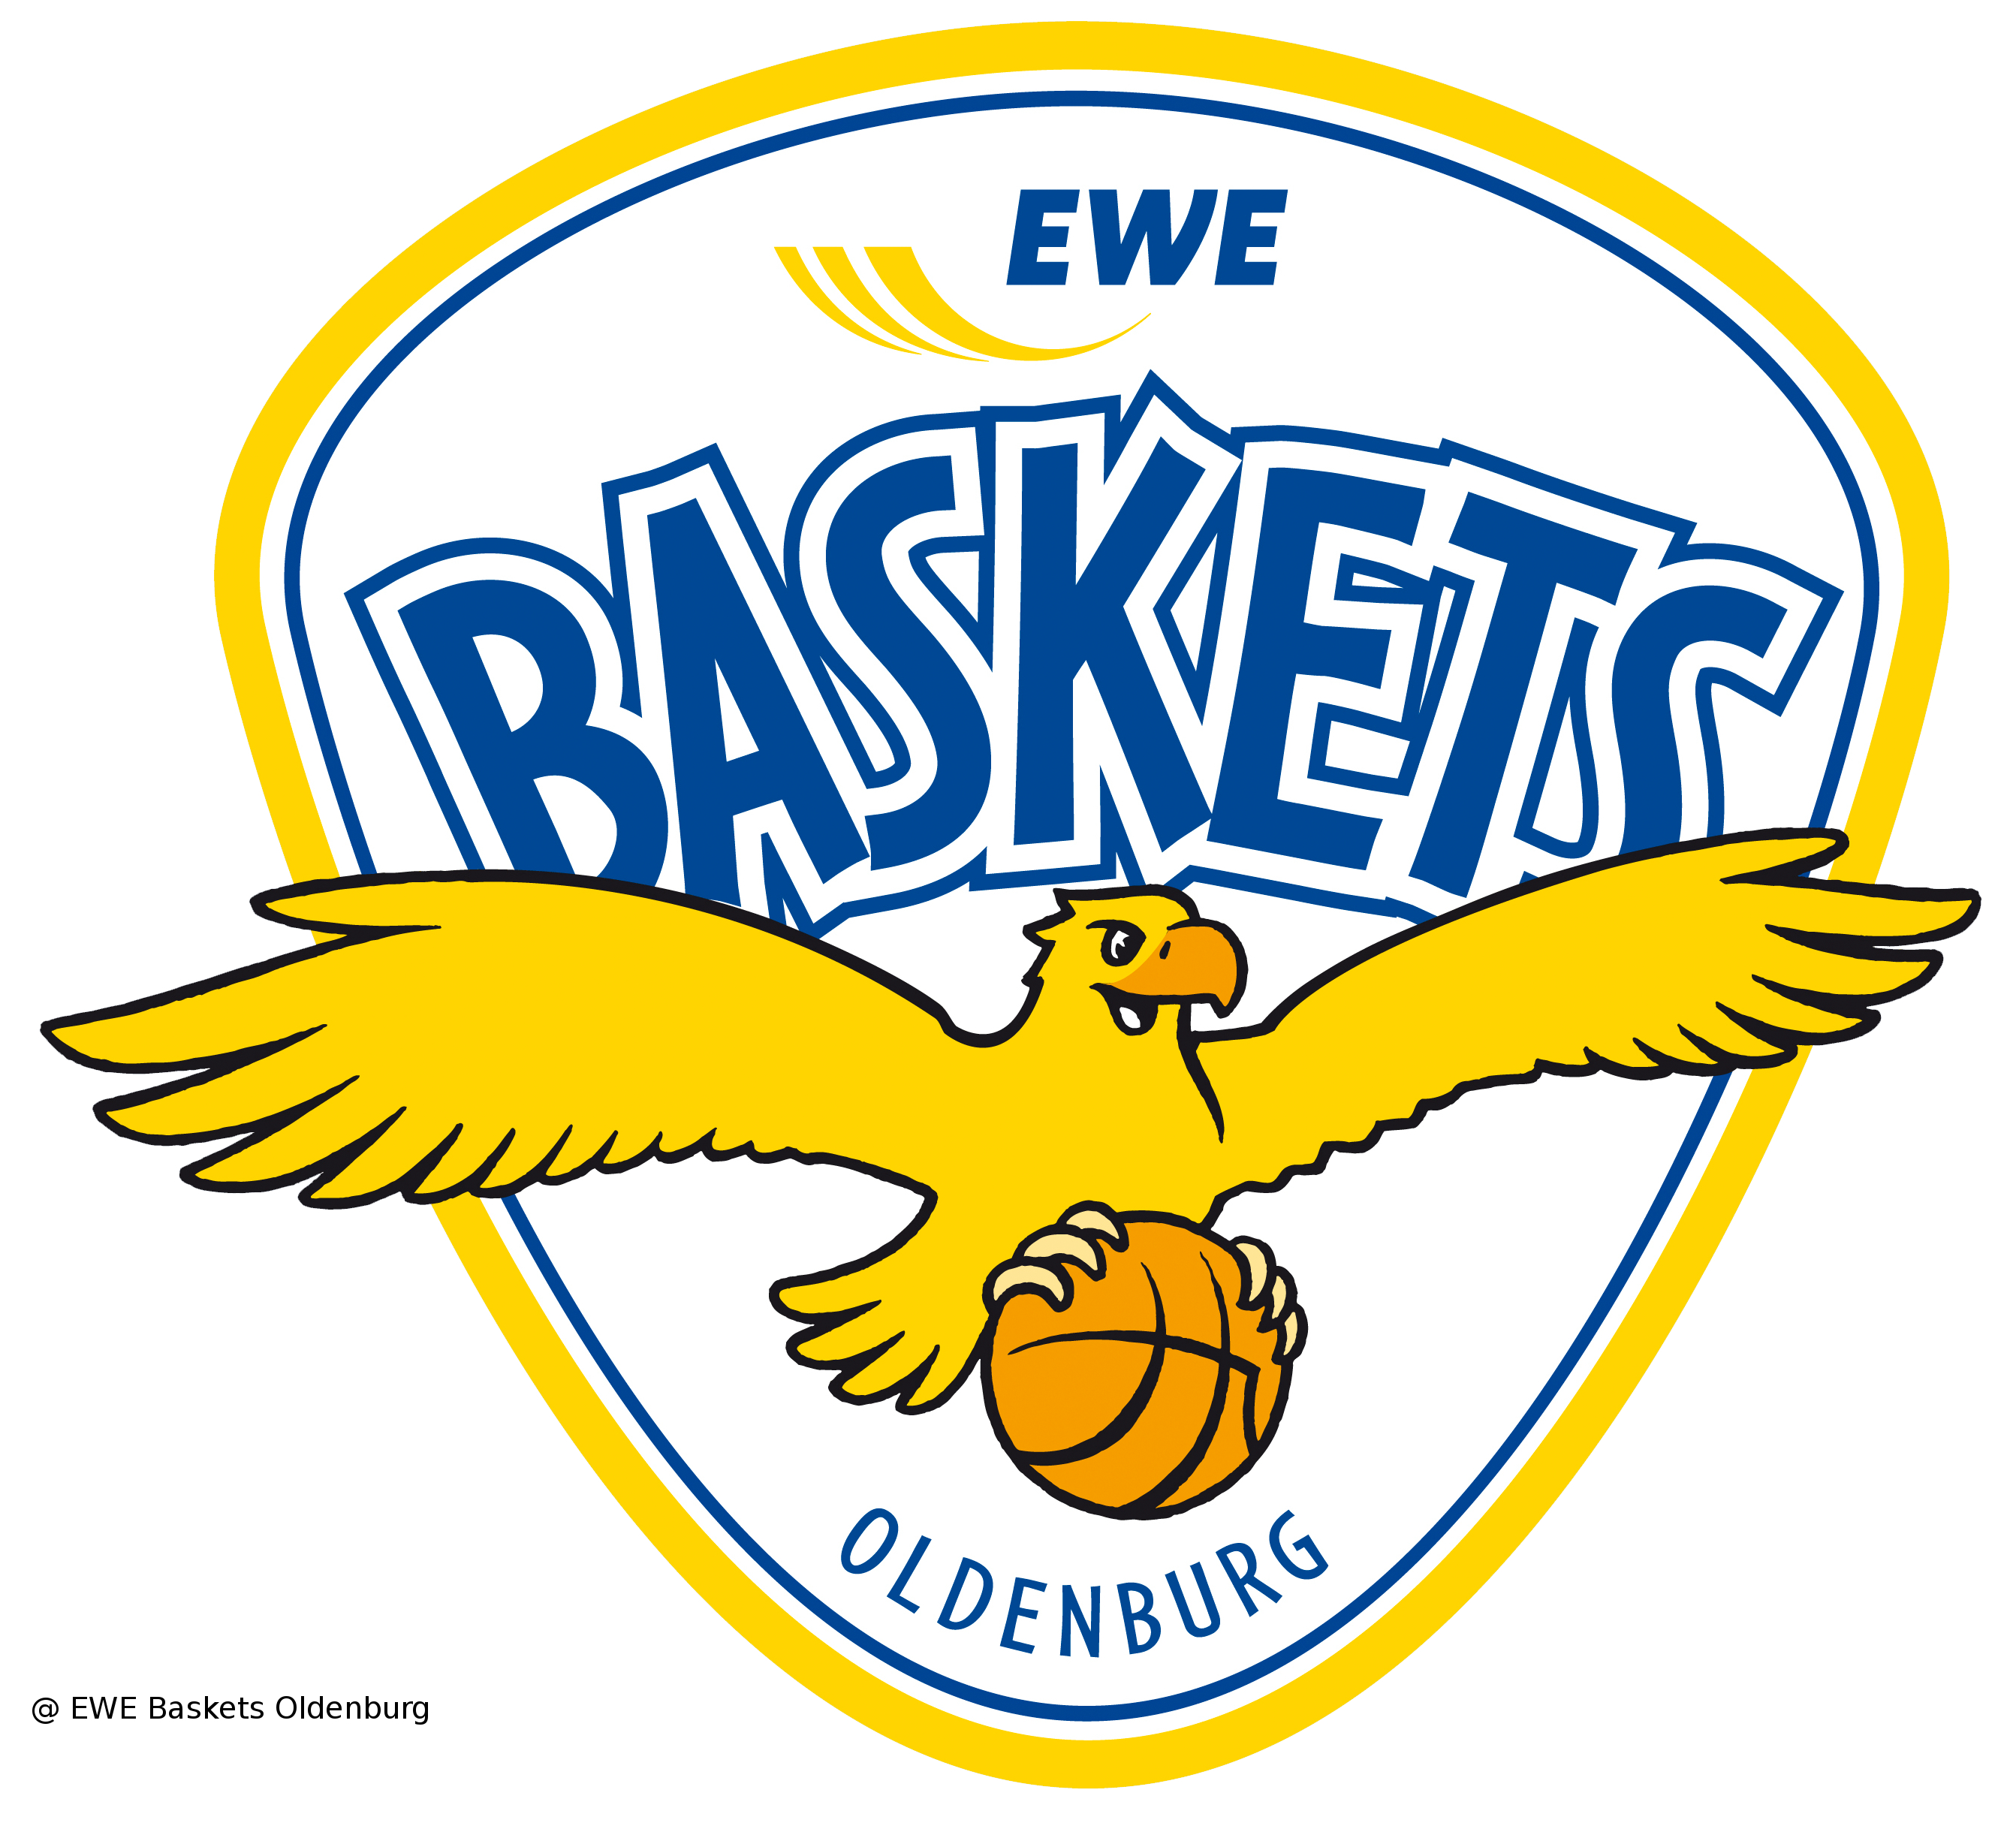 Ticket-Pate bei den EWE Baskets Oldenburg werden